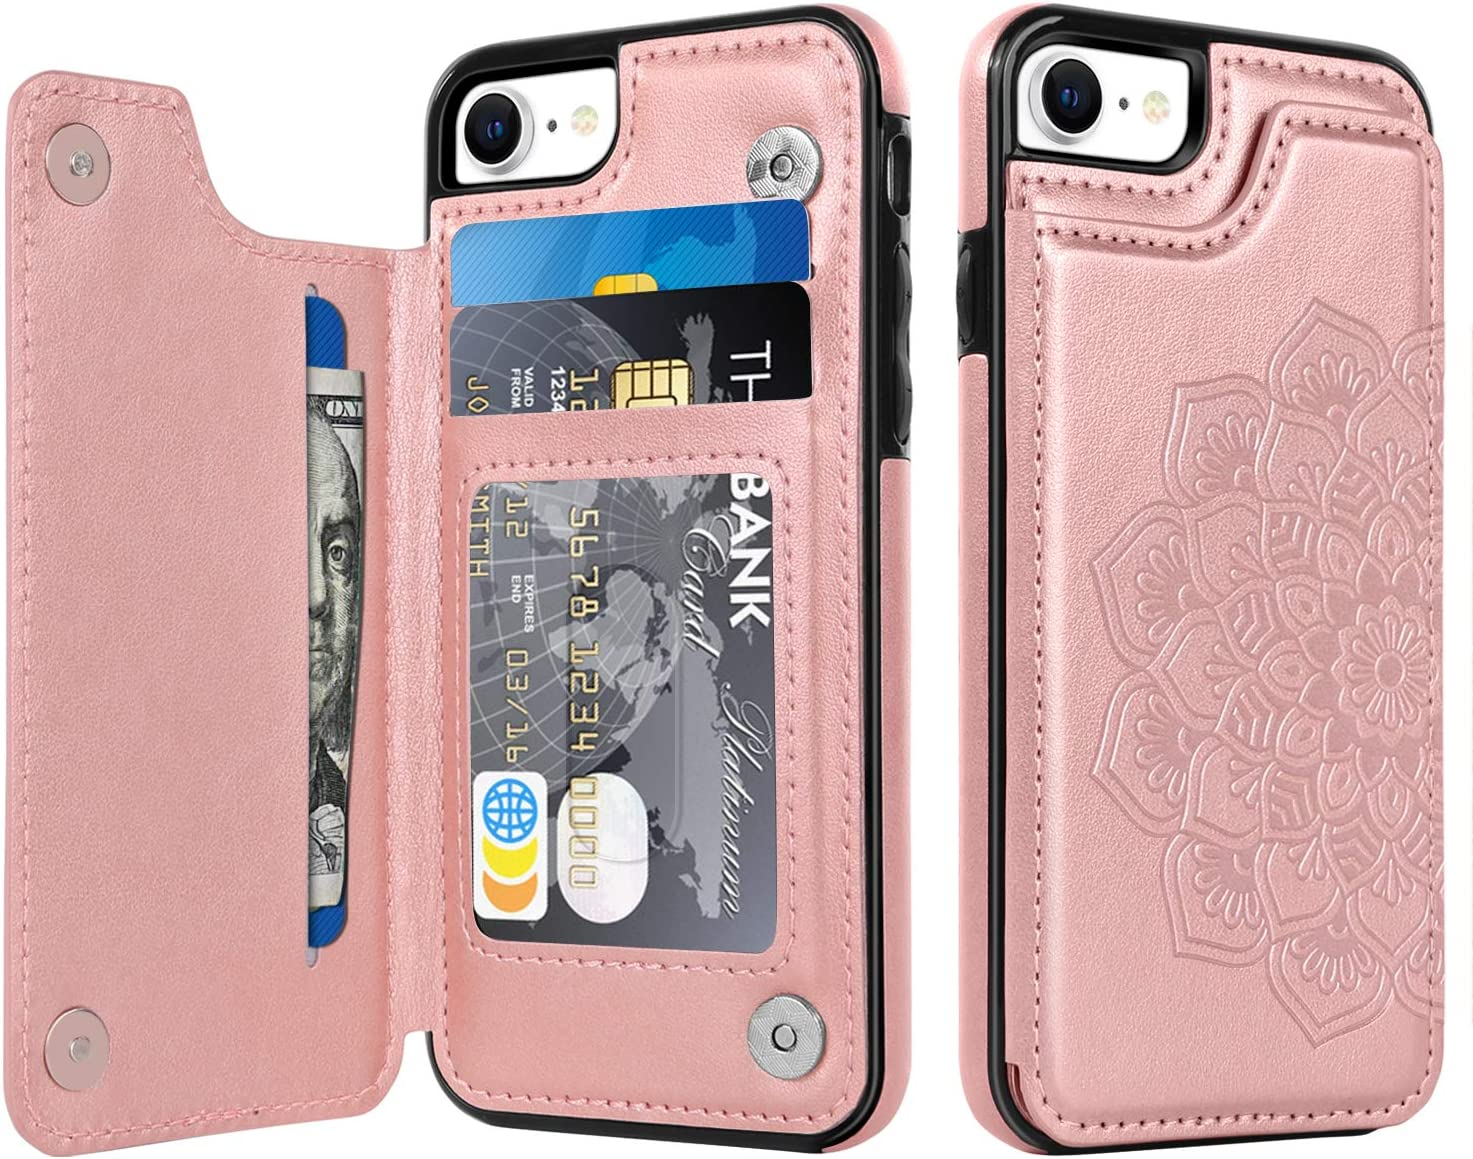 BENTOBEN Wallet Case for iPhone SE 2020, iPhone 7 Case, iPhone 8 Case, PU Leather Heavy Duty Rugged Shockproof Protective Cases with Card Slots Cash Holder Phone Case for iPhone SE 2nd/7/8 -Rose Gold